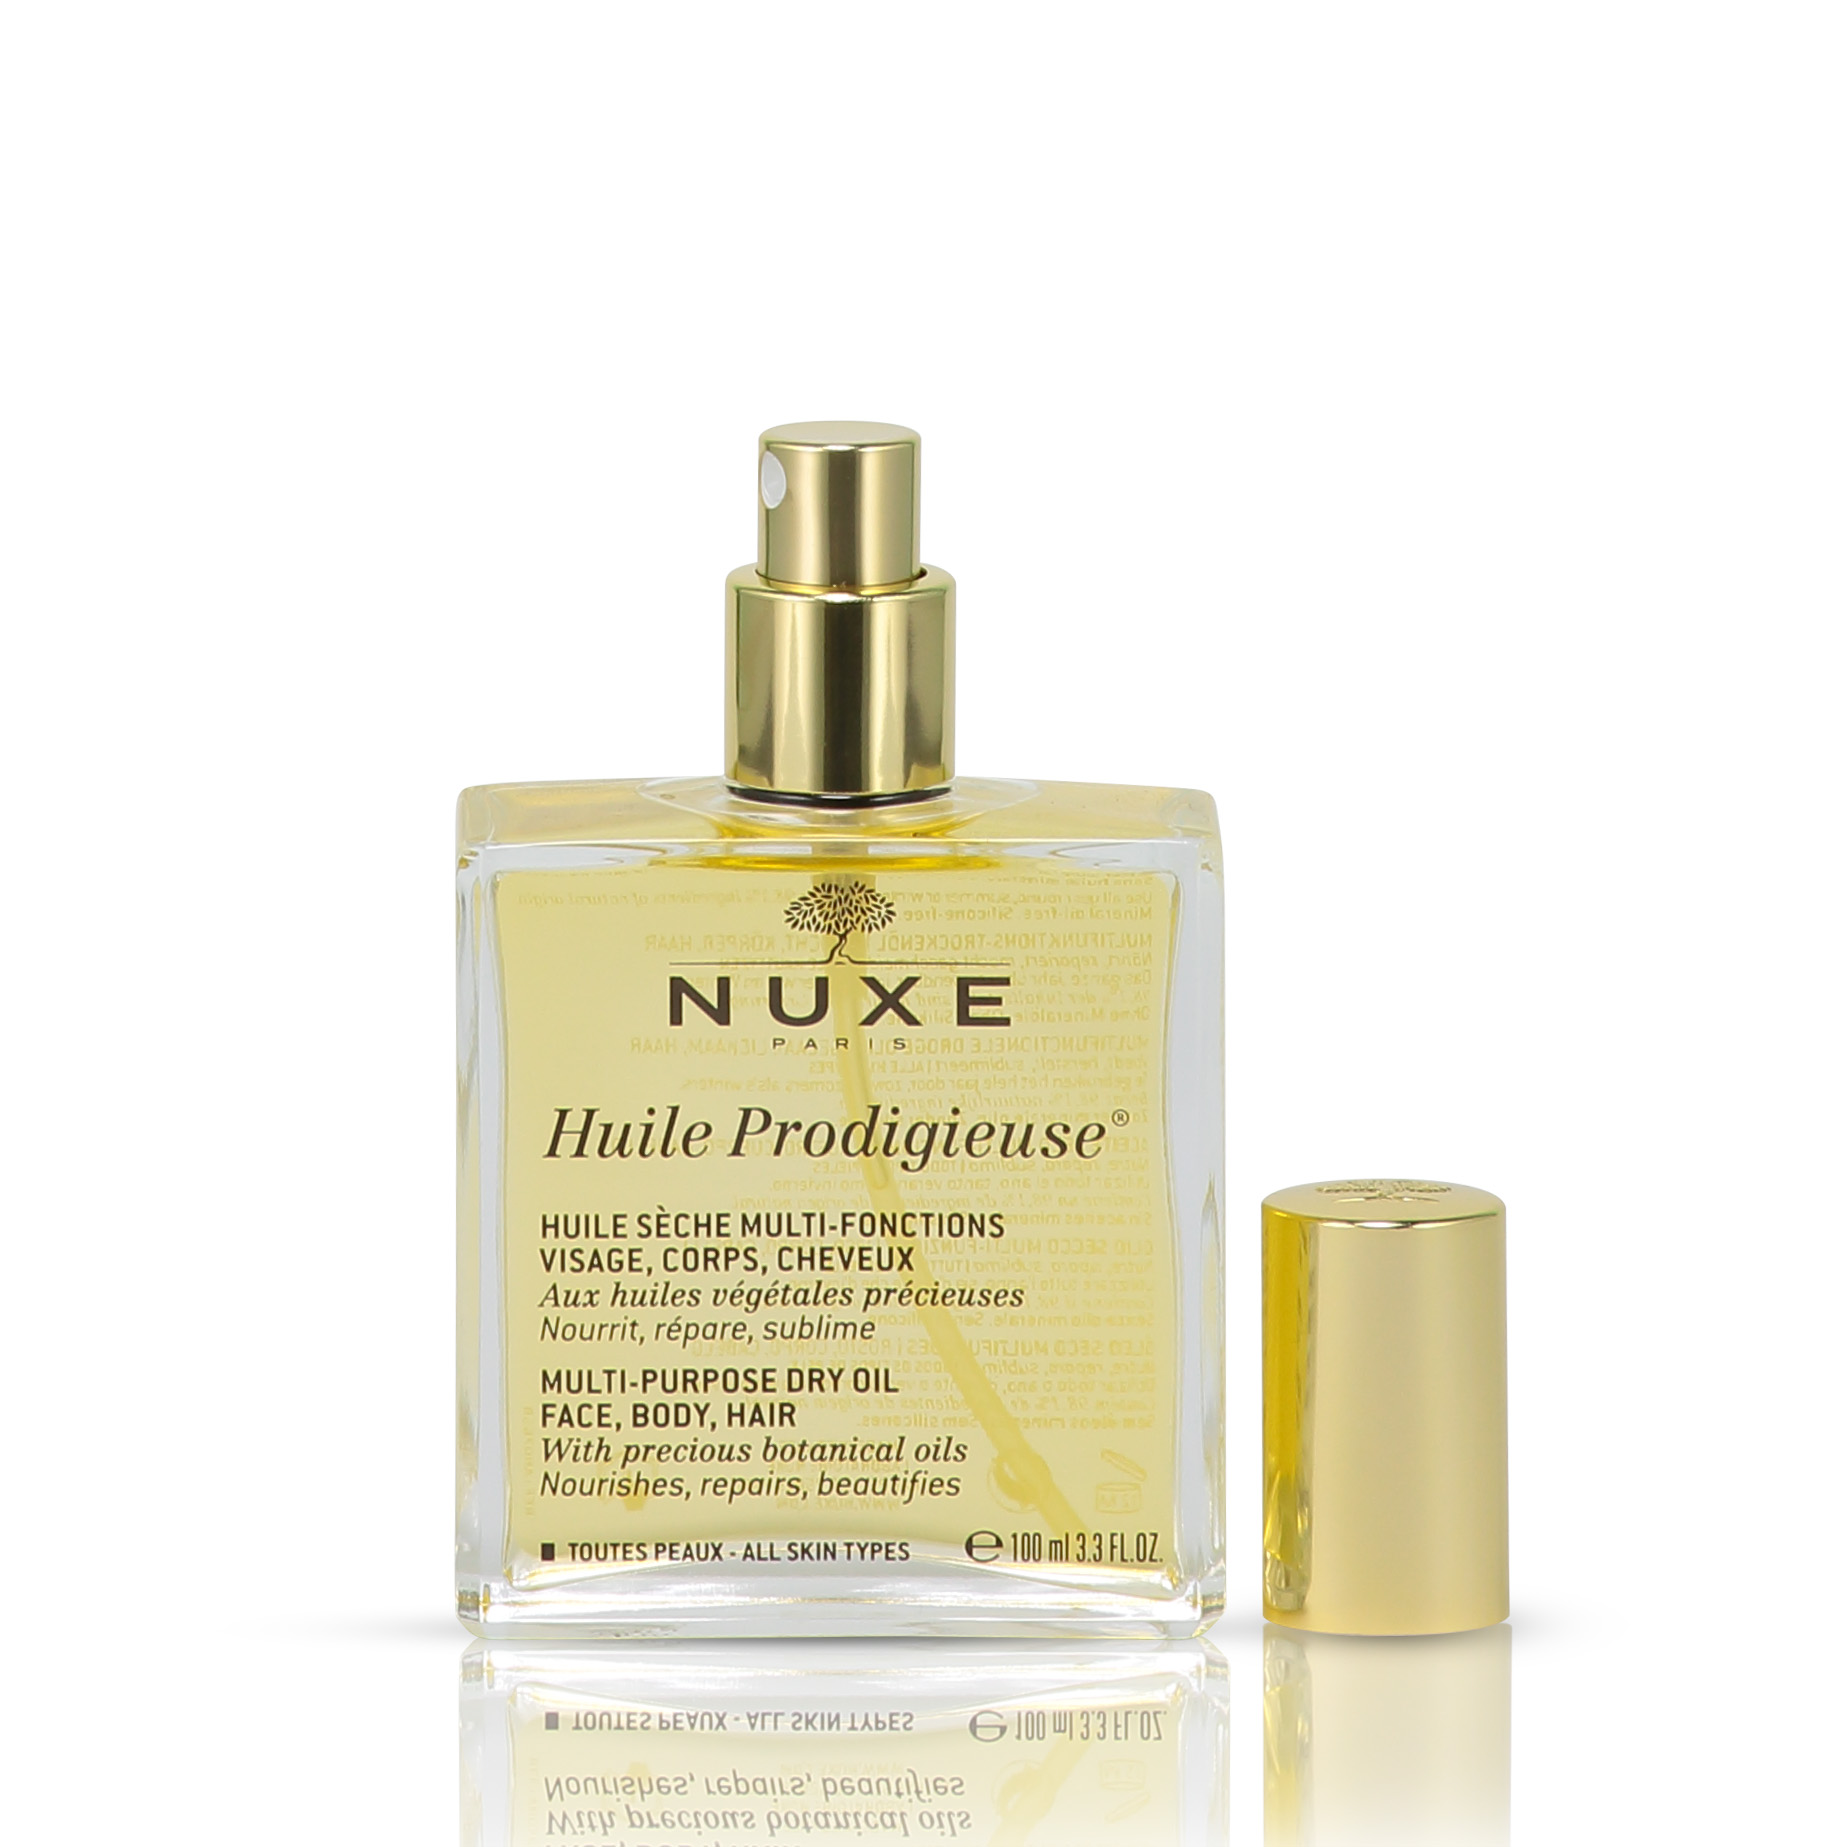 INES__0011_nuxe huile prod 100 2_Front copy.jpg